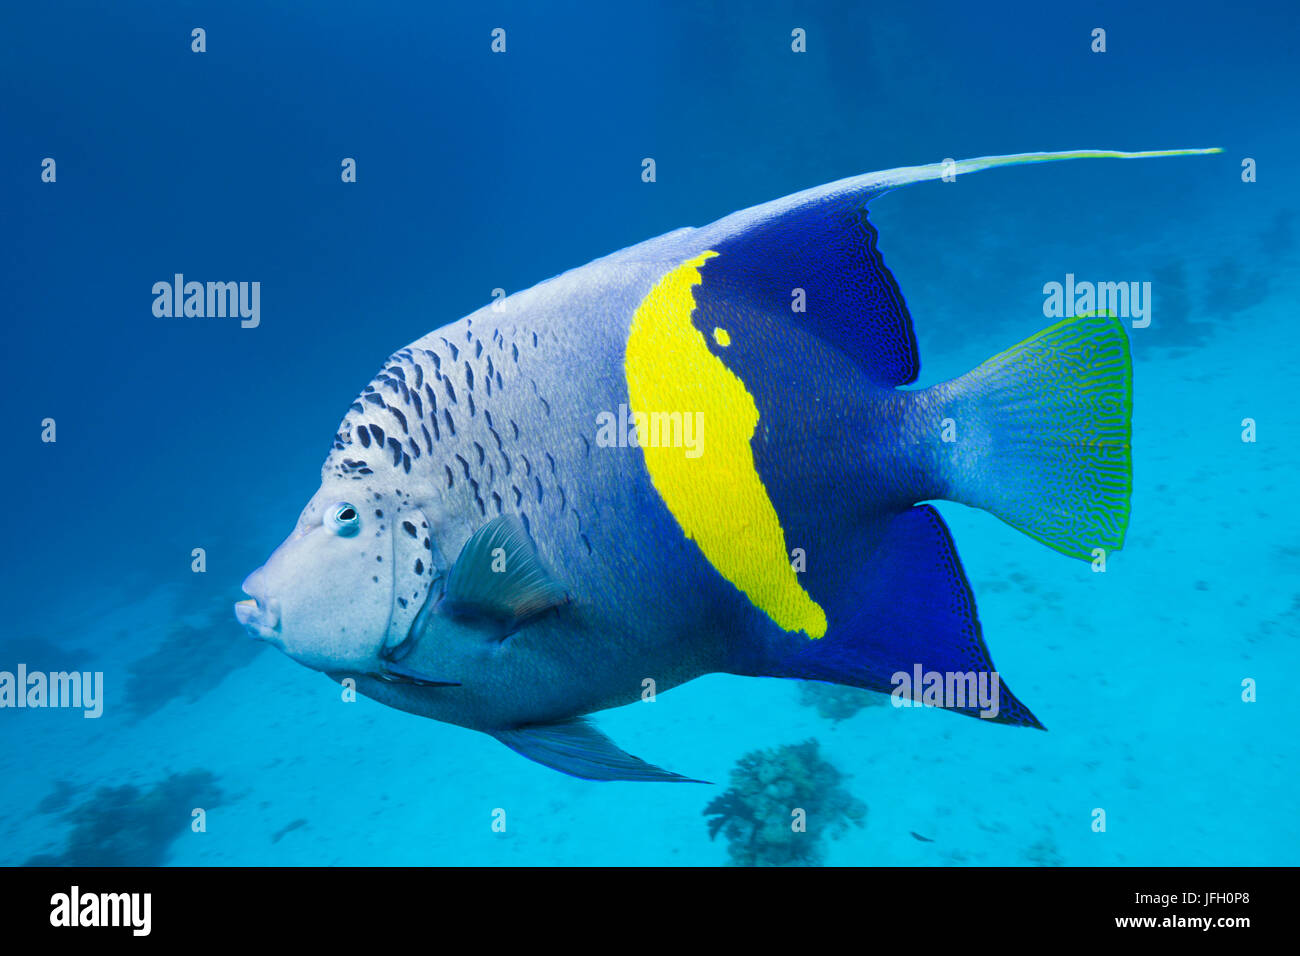 Arabian imperial fish, Pomacanthus maculosus, the Red Sea, Dahab, Egypt - Stock Image